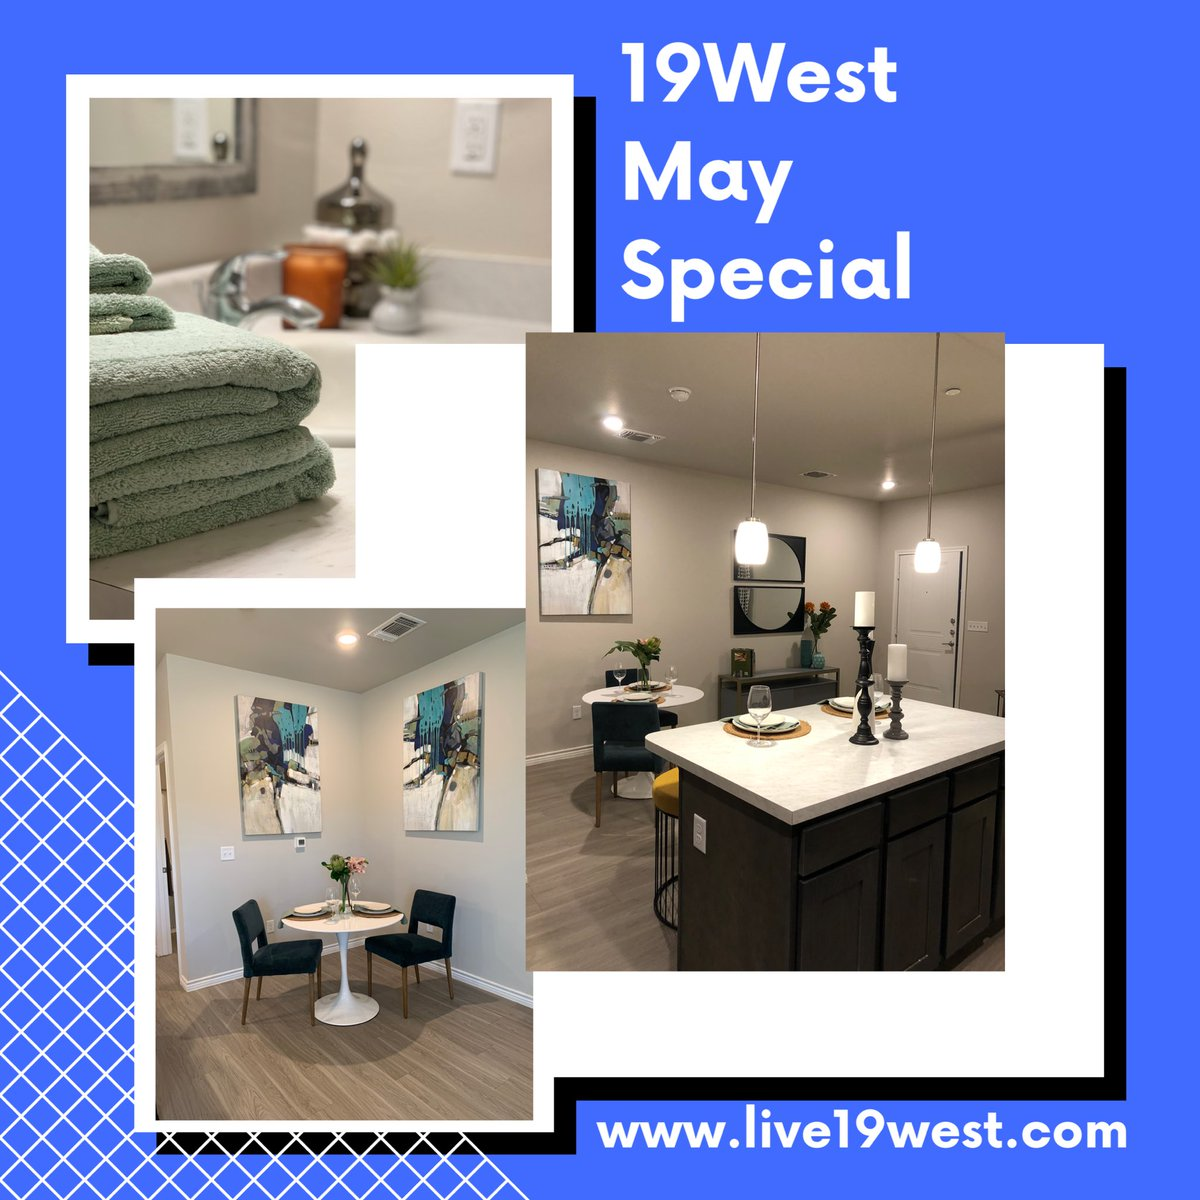 Apply today, move in by May 15th & get the entire month's rent FREE!!! Going Fast! #lubbockapartments #love19west #lubbockapartmentassociation  #fall2019 #luxuryliving #luxuryapartments #goingfast #cozyliving #lovewhereyoulive #livewhereyoulove #frenshipschool #ttu #lcu #spc